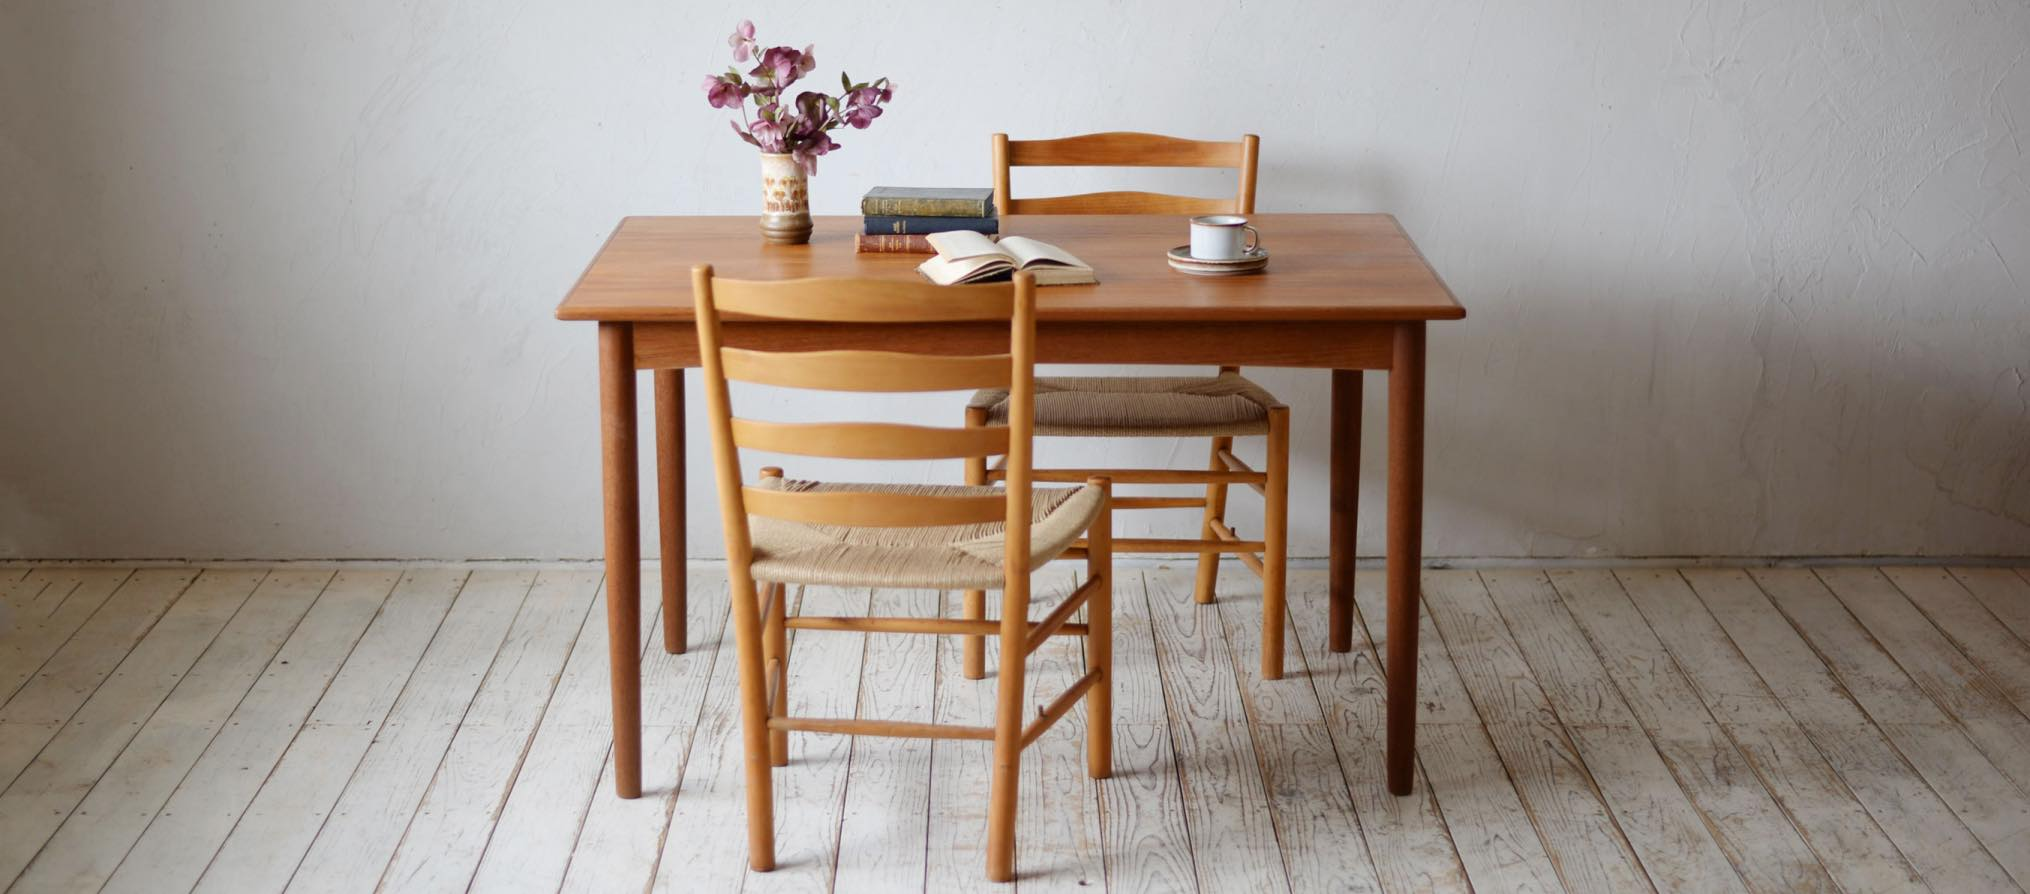 Dining Table D-R212D620_デザイン